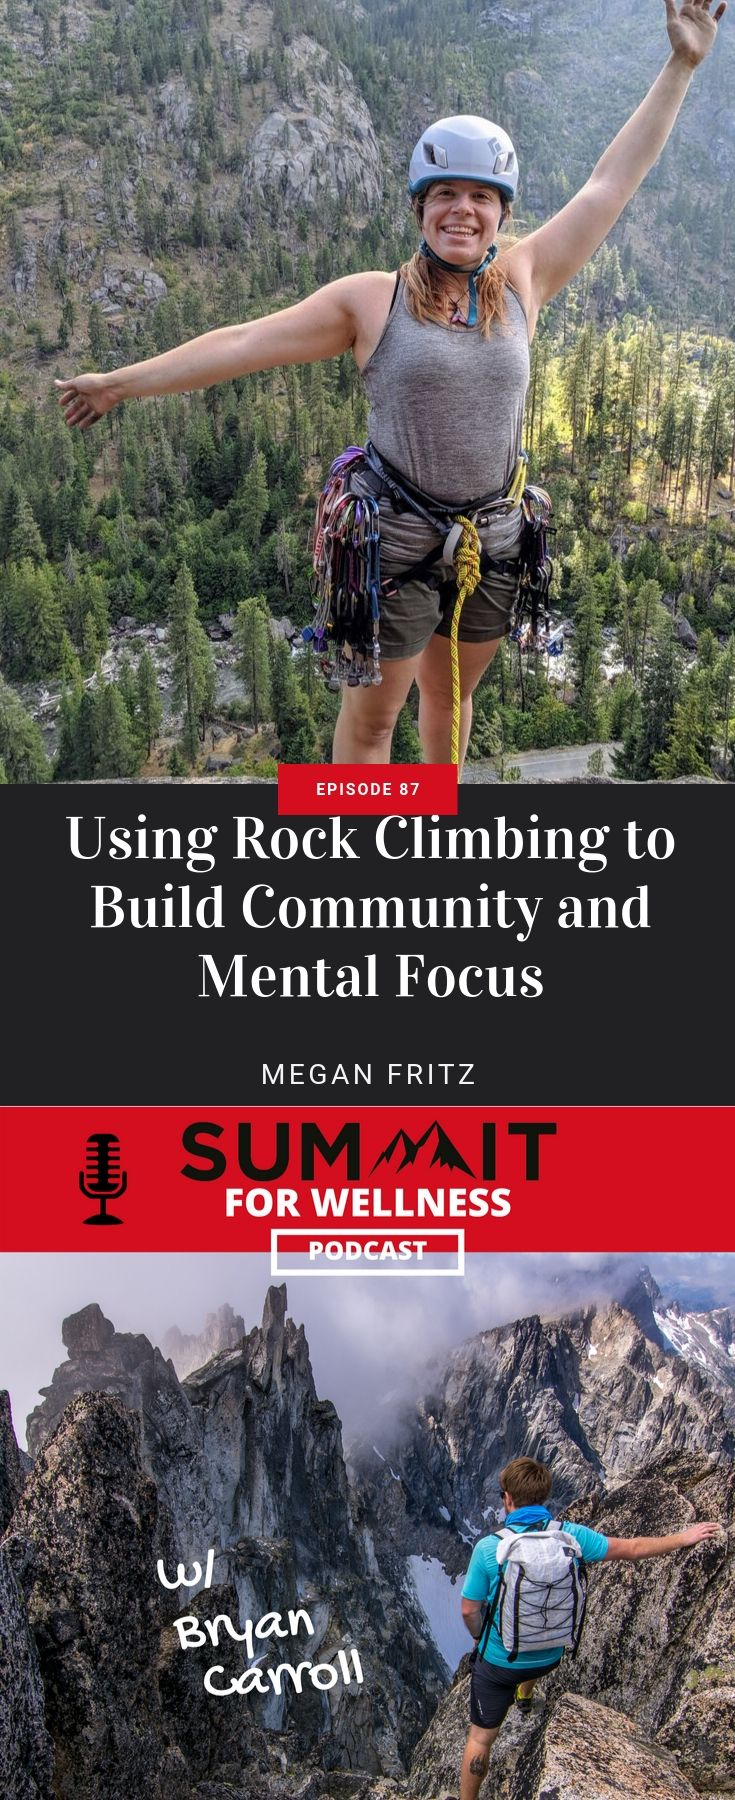 Megan Fritz of Never Stop Moving teaches us how rock climbing can be used to build community and mental focus